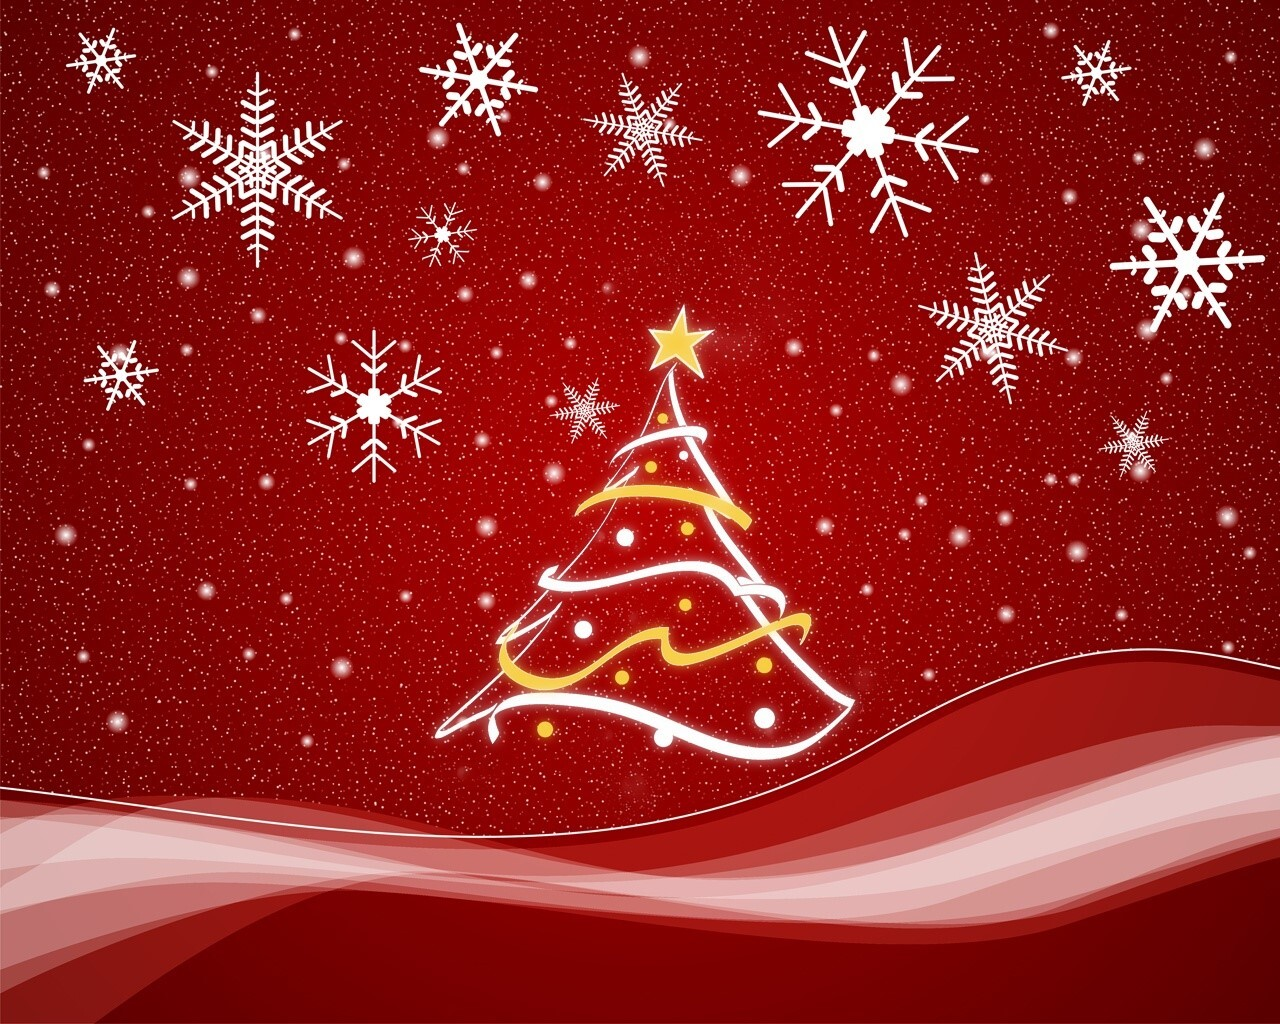 Christmas Tree In Red Background